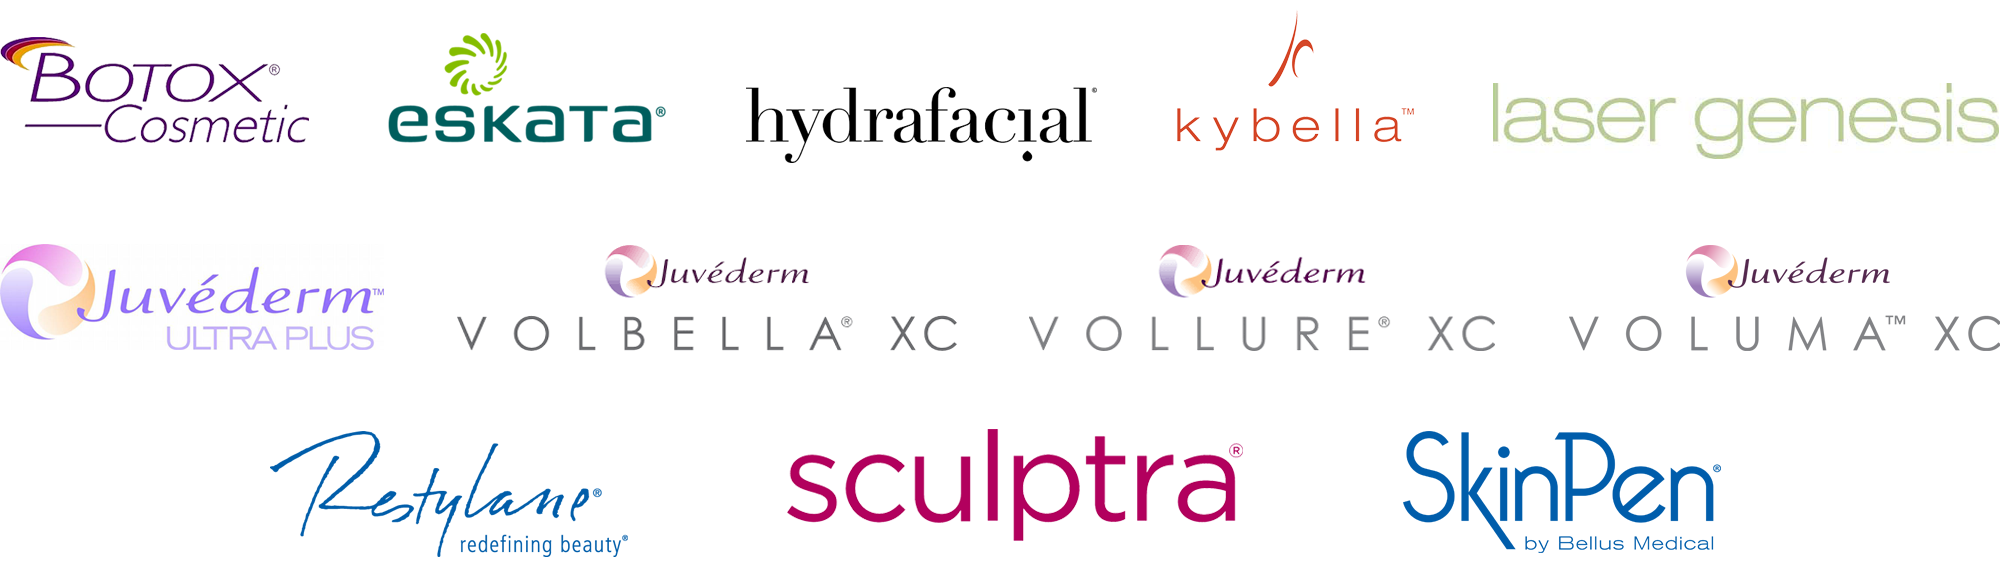 Shades Valley Dermatology offers the following cosmetic treatments: Juvederm Ultra Plus XC, Volbella XC, Voluma XC, Vollure XC, Restylane-L, Sculptra, Kybella, Botox Cosmetic, HydraFacial, SkinPen, Laser Genesis and Eskata.